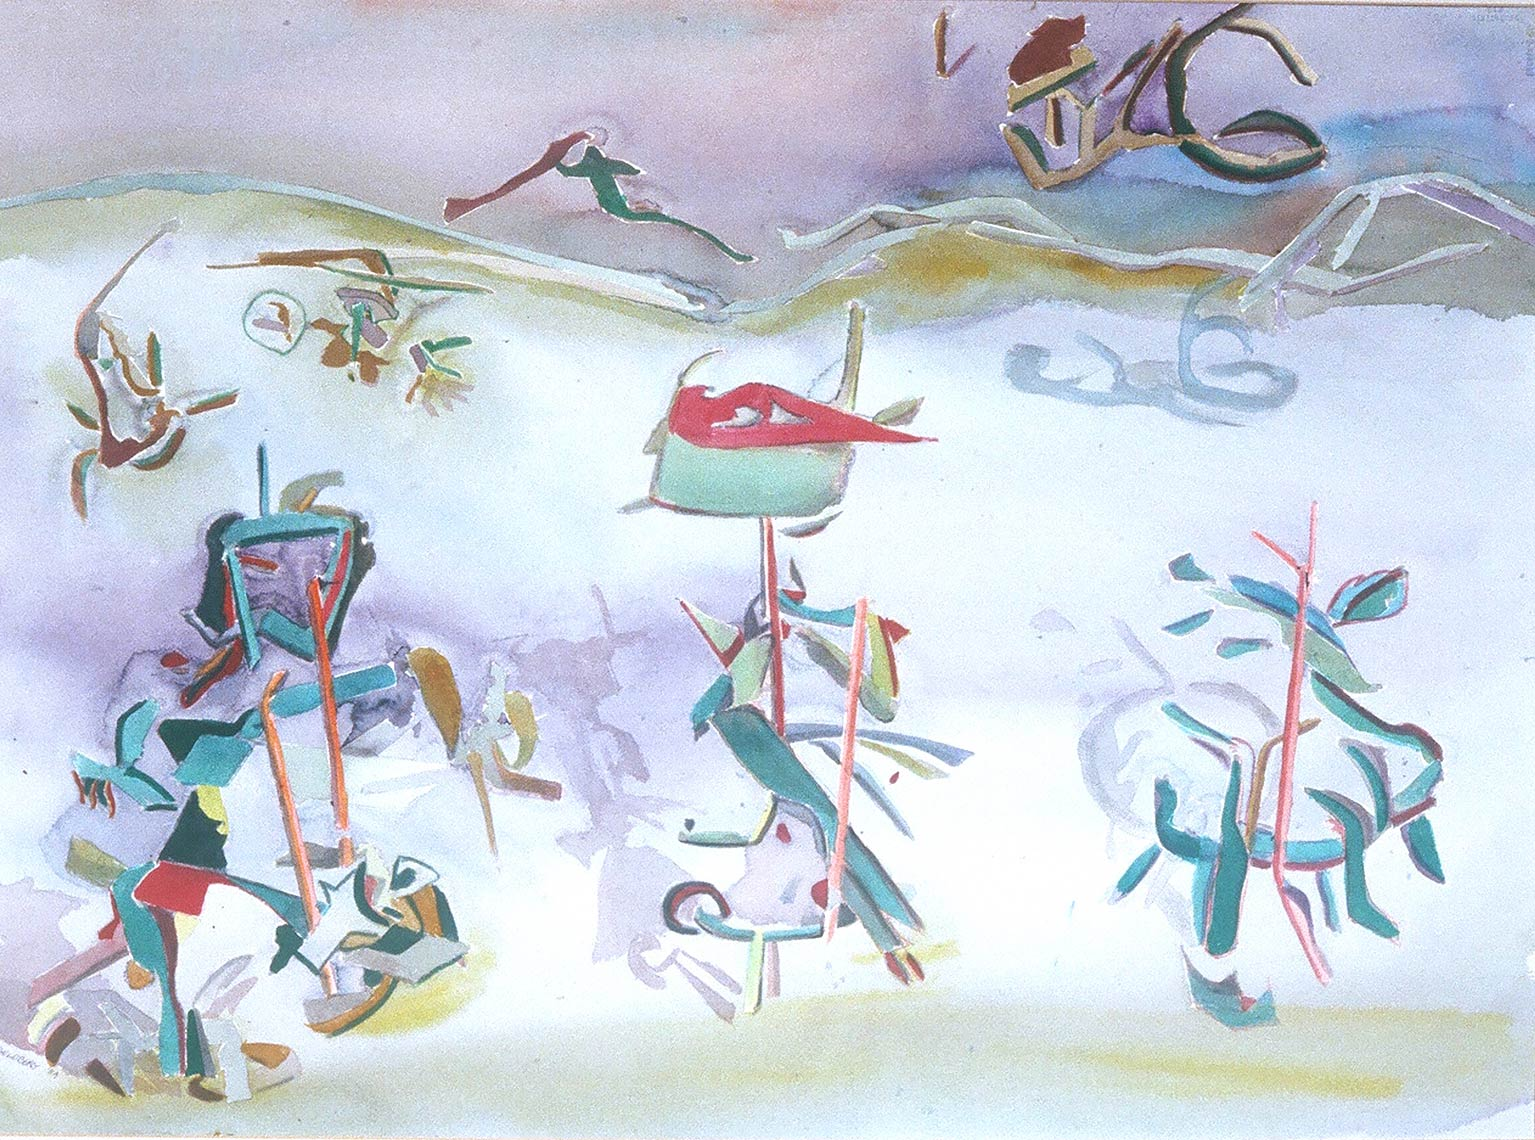 Shadow-Puppets-on-a-Walk-1985-Watercolour-on-rag-paper-22x30-inches